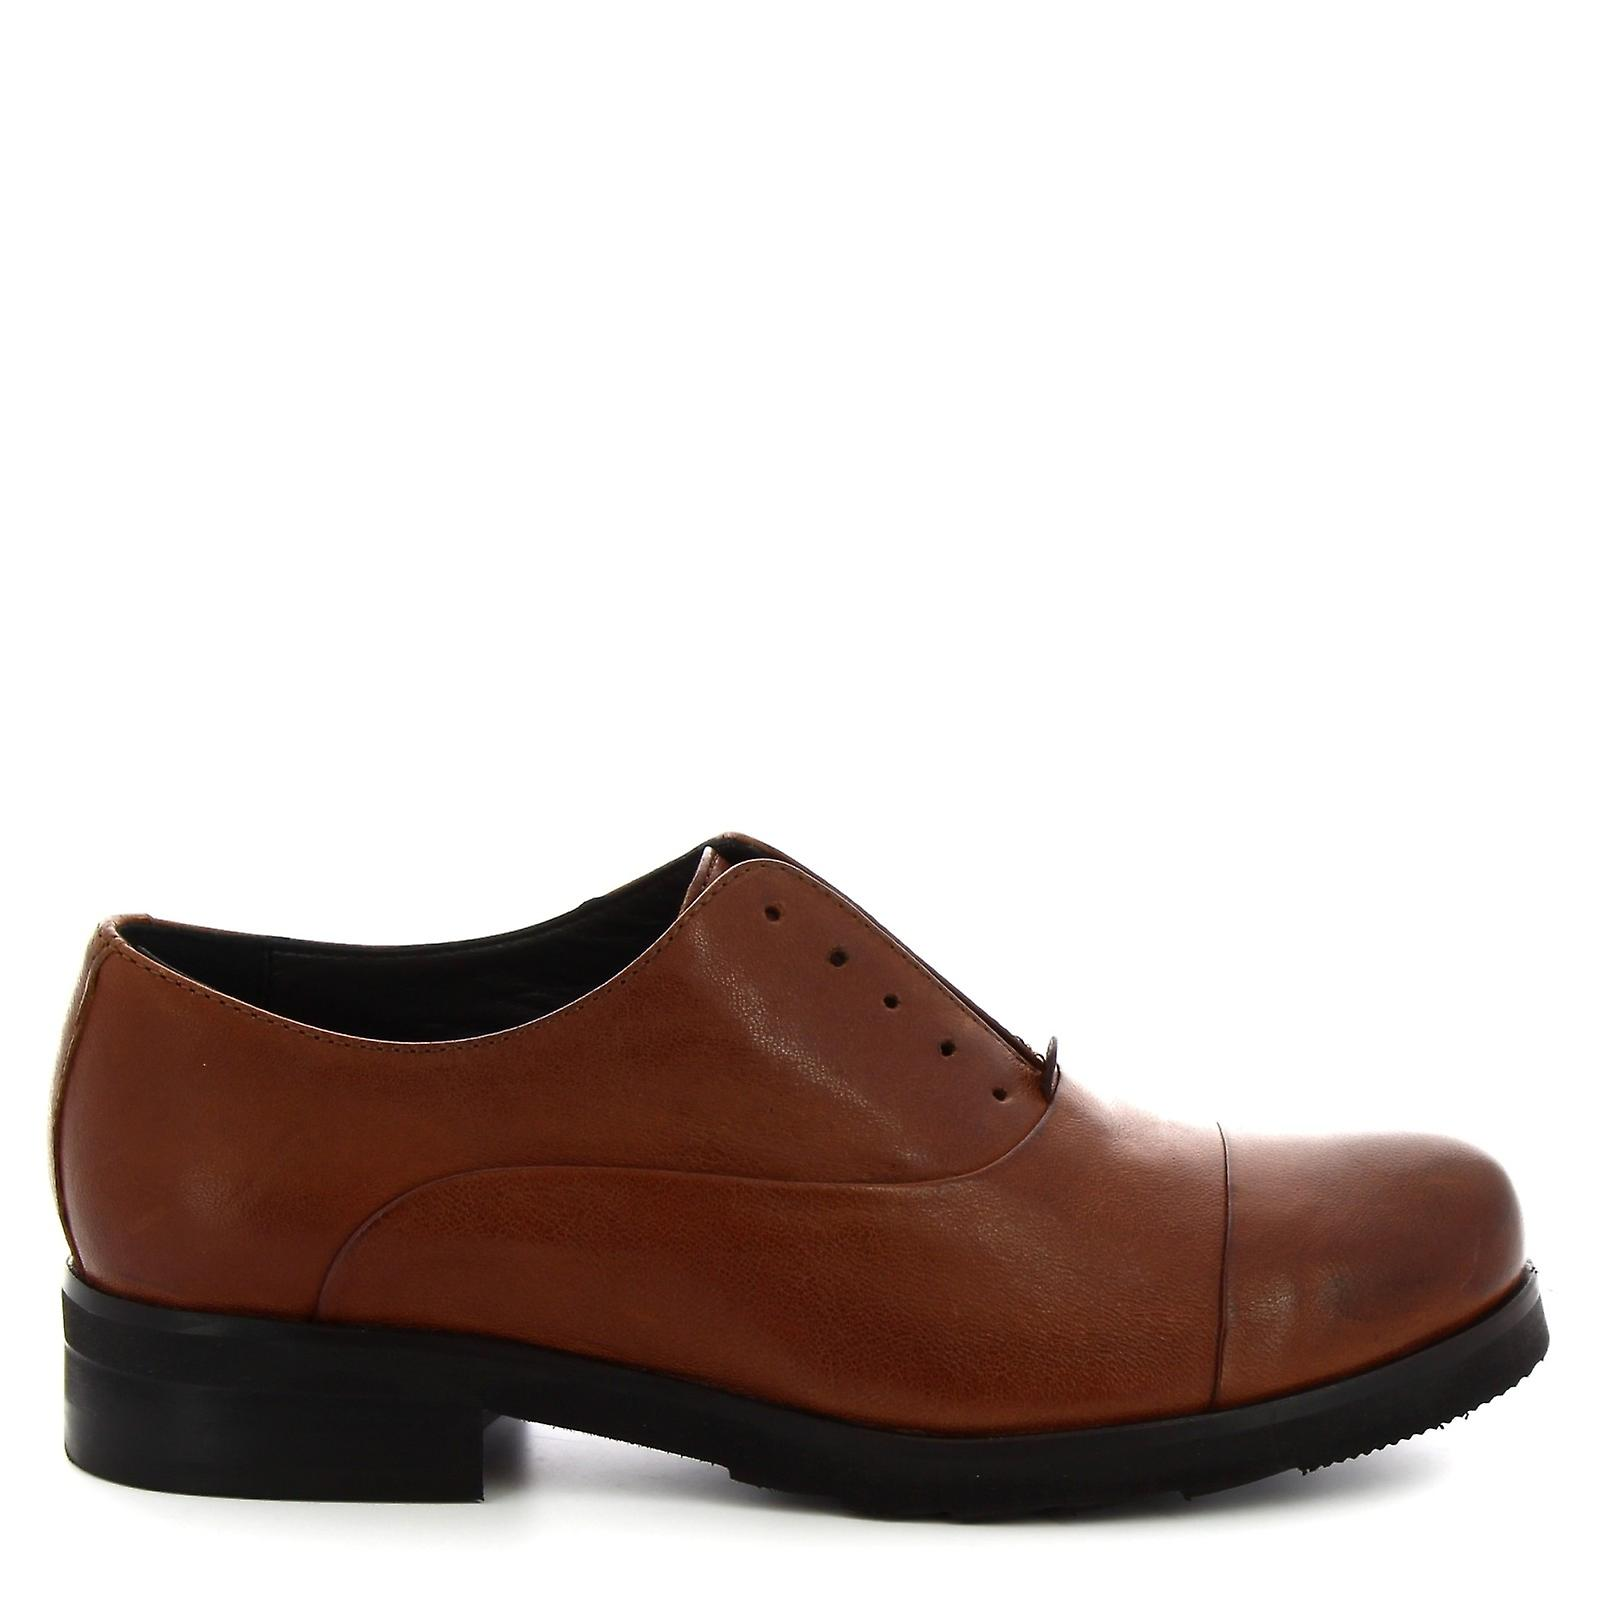 Leonardo Shoes Women's handmade derby laceless shoes in tan calf leather